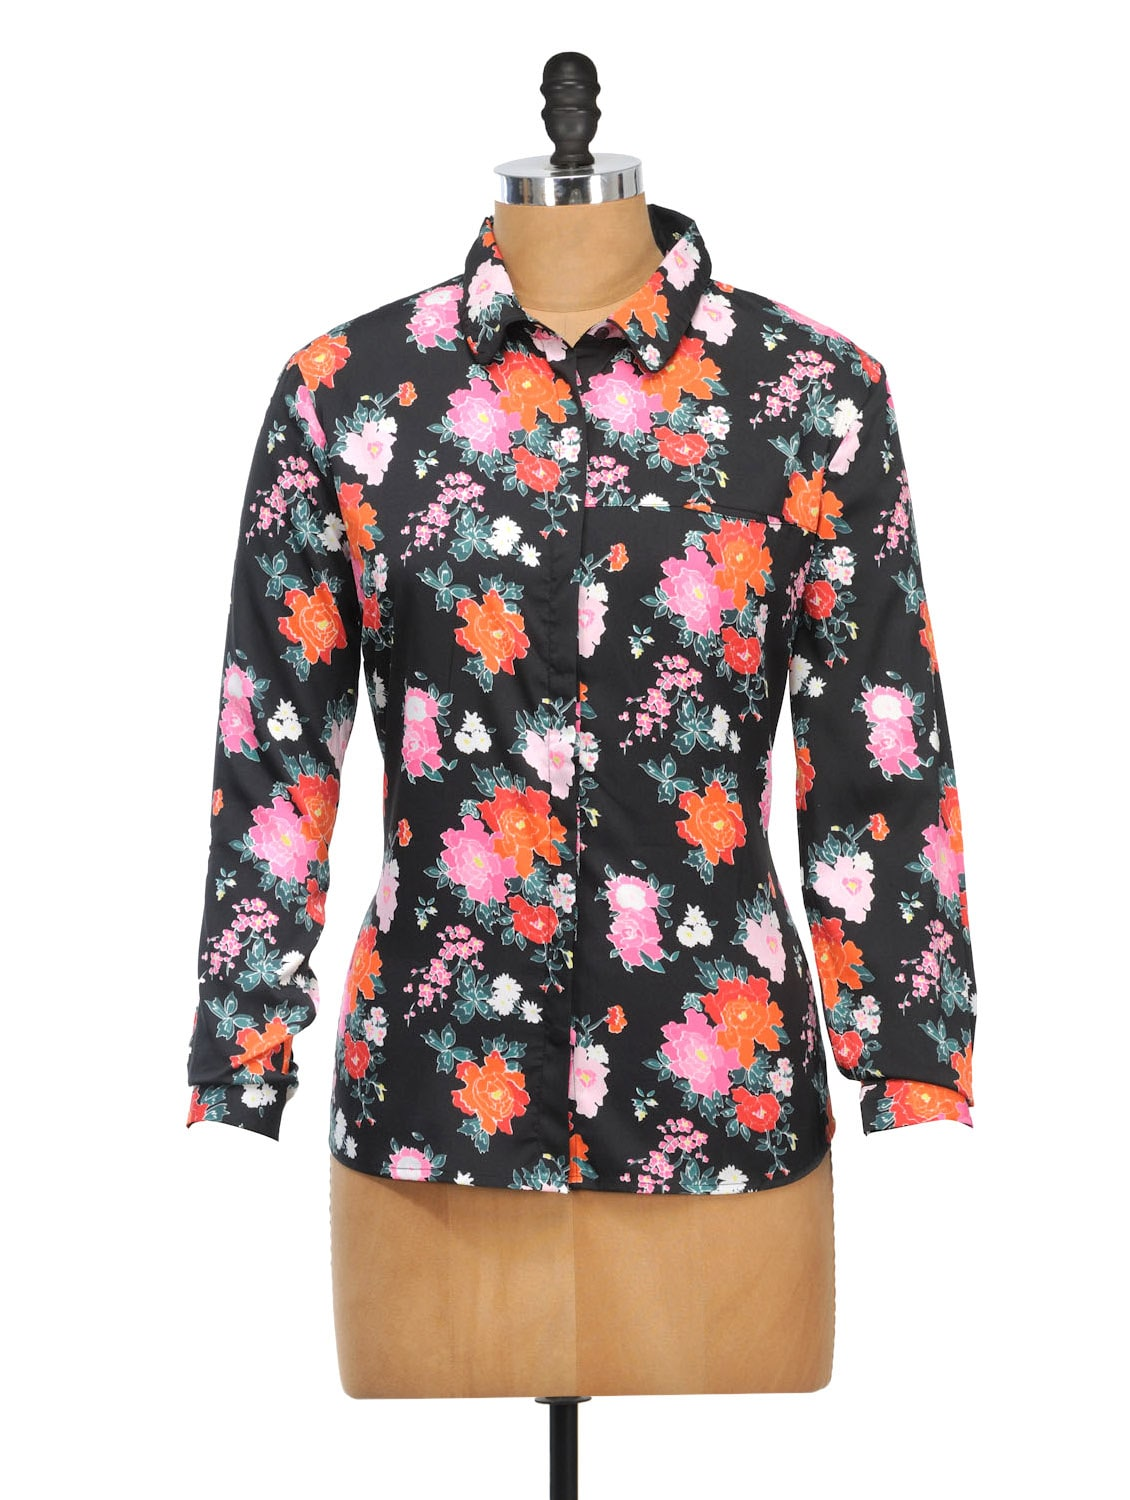 Floral Print Polyester Shirt - Oxolloxo